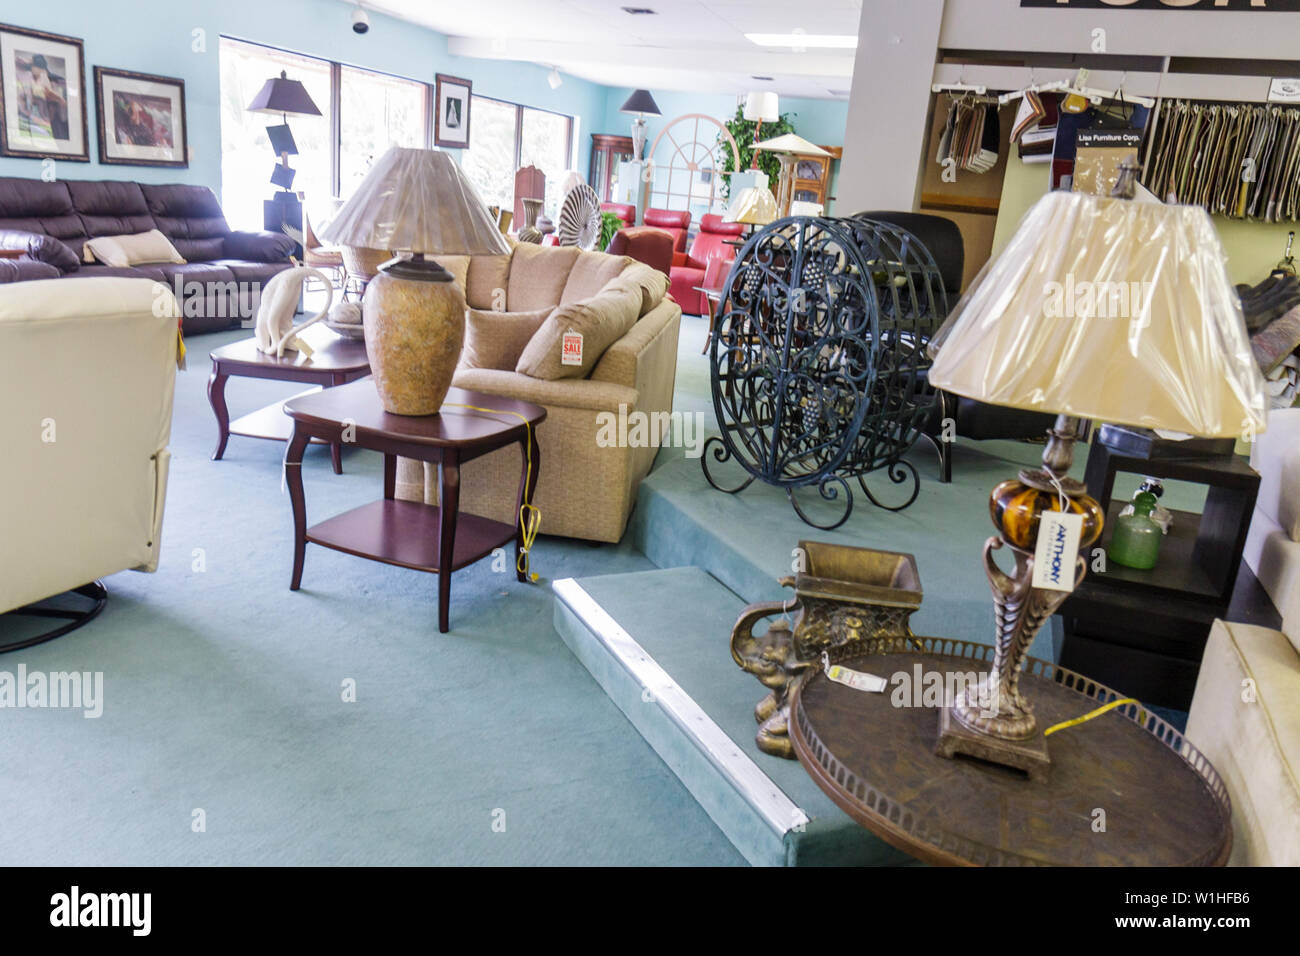 naples florida furniture store business retail showroom couch sofa table lamp furnishing decor shopping stock